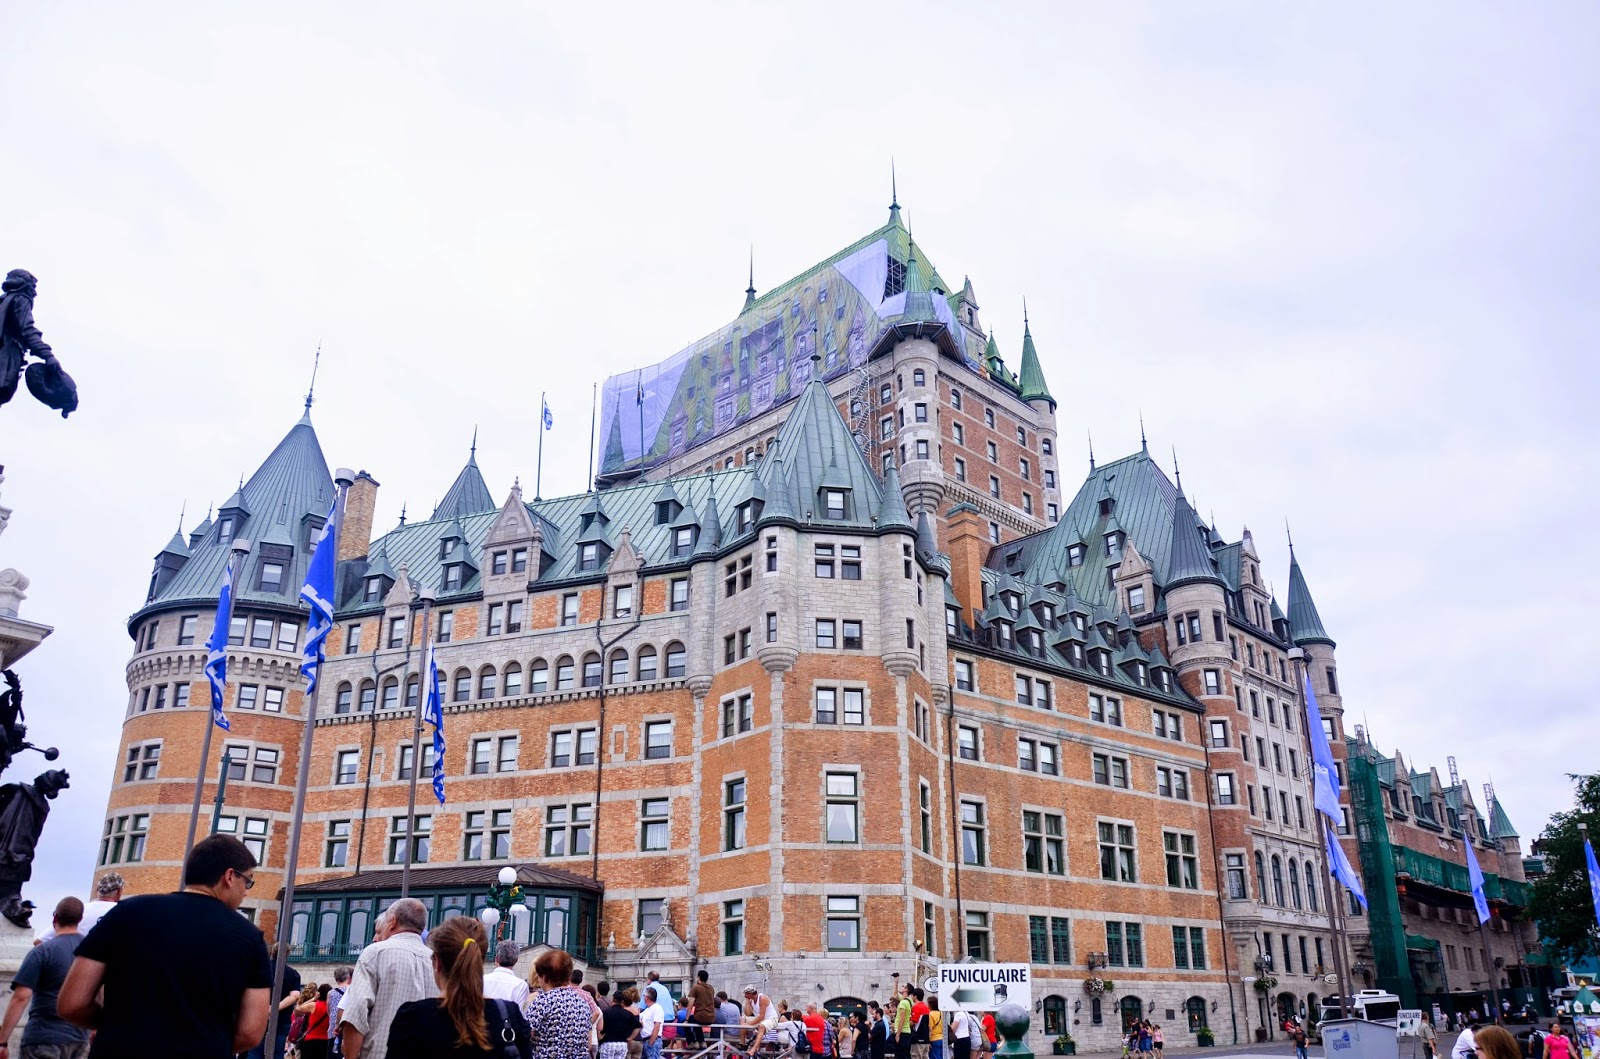 Fairmont Chateau Frontenac in Quebec, Canada, summer travel weekend getaway